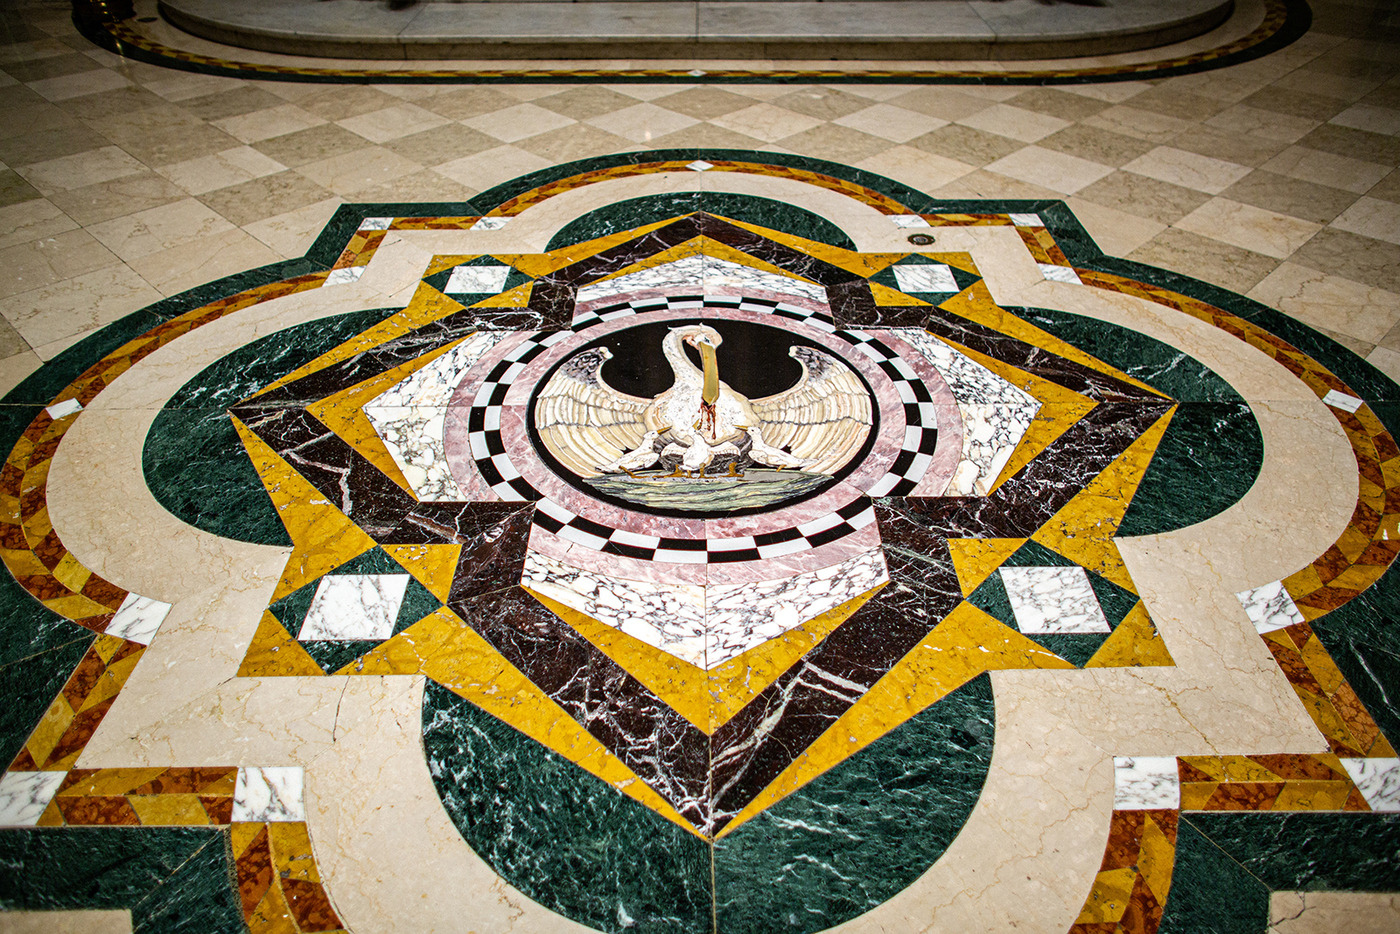 The floor's exquisitely detailed marble mosaic depicts a pelican piercing her breast to feed her young with her own blood, an early symbol of Christ